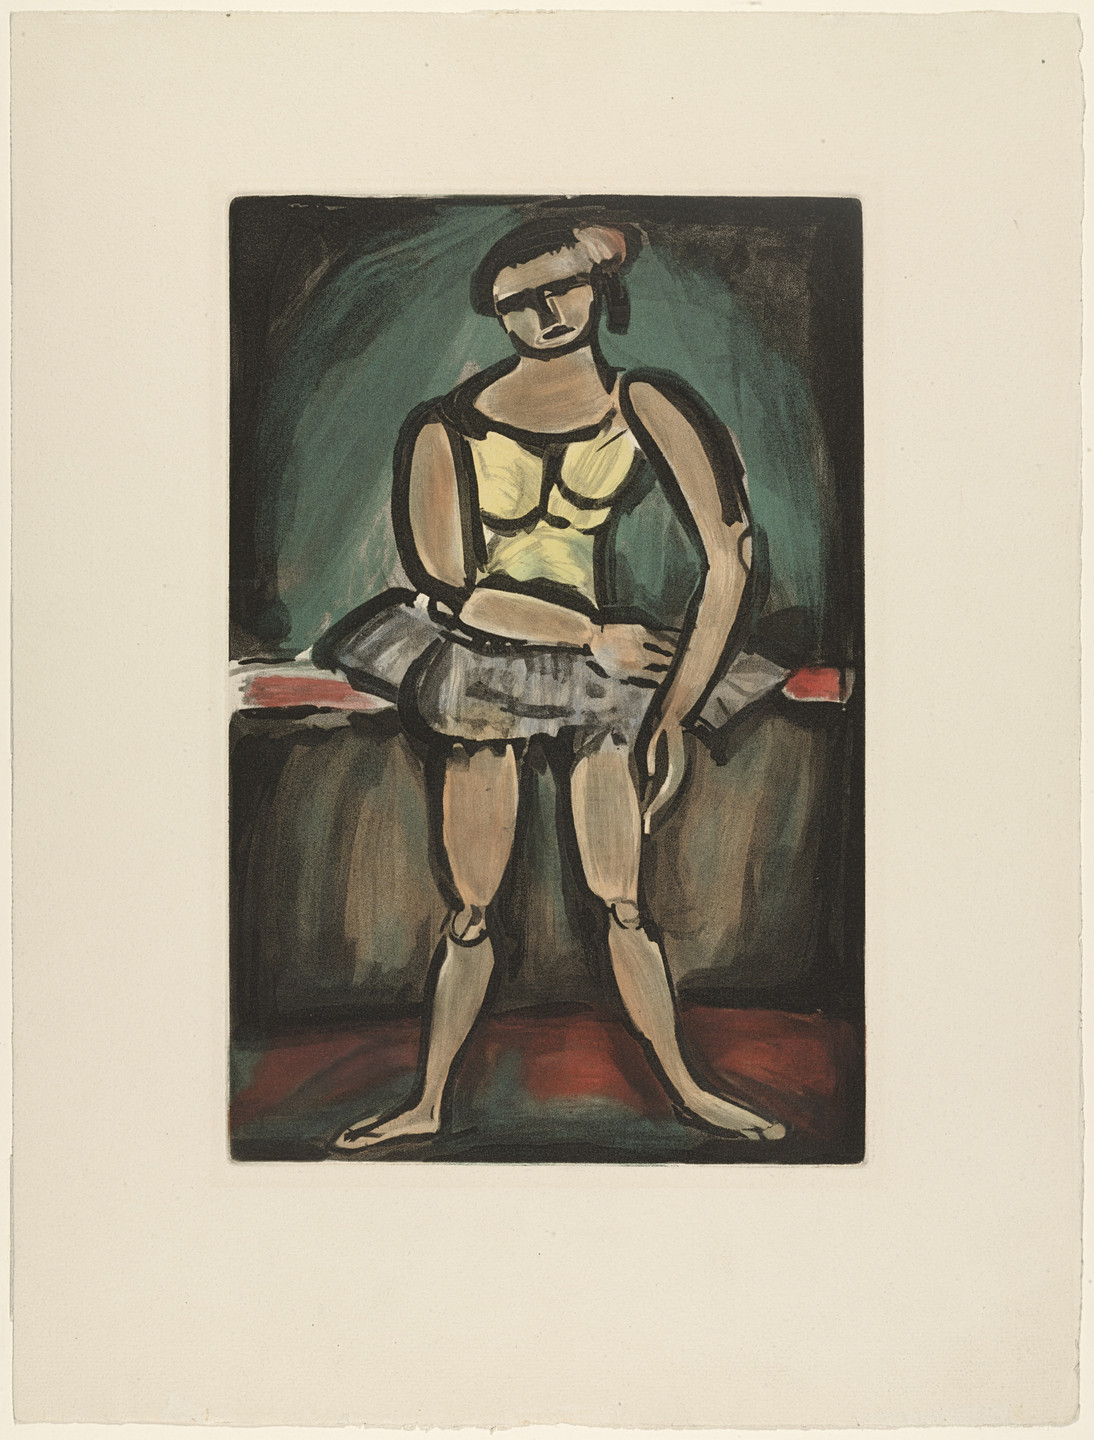 Georges Rouault. Ballerina from Cirque. 1930